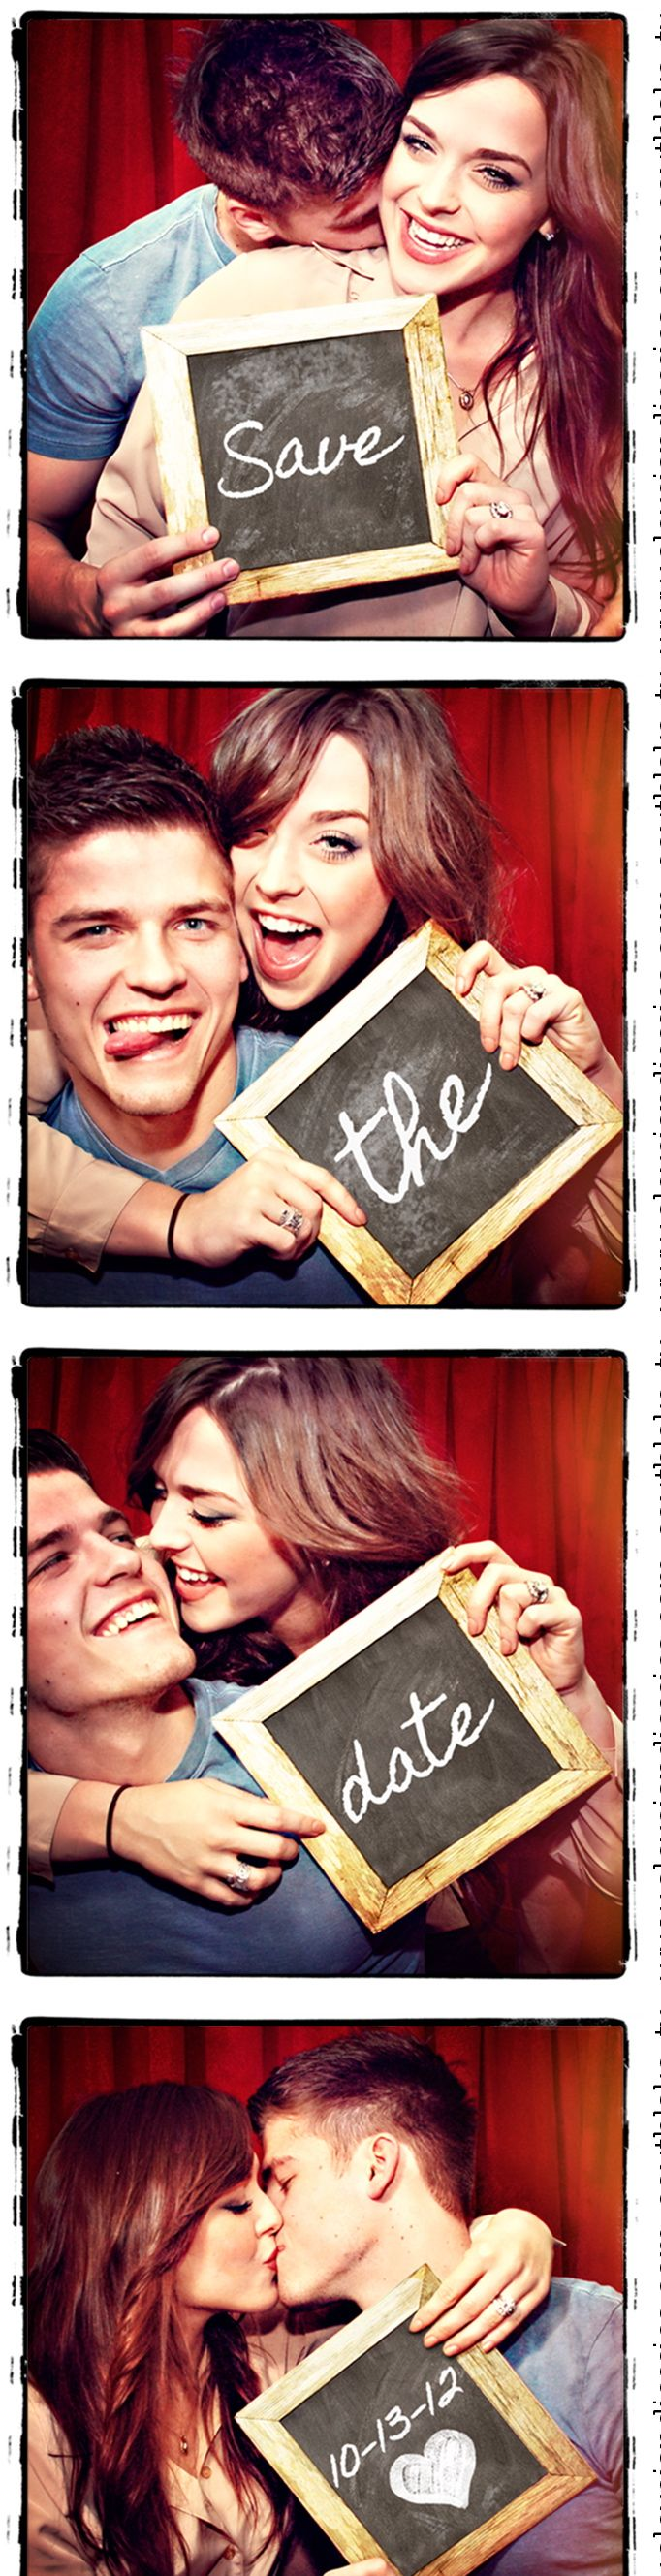 save the date, photo booth style